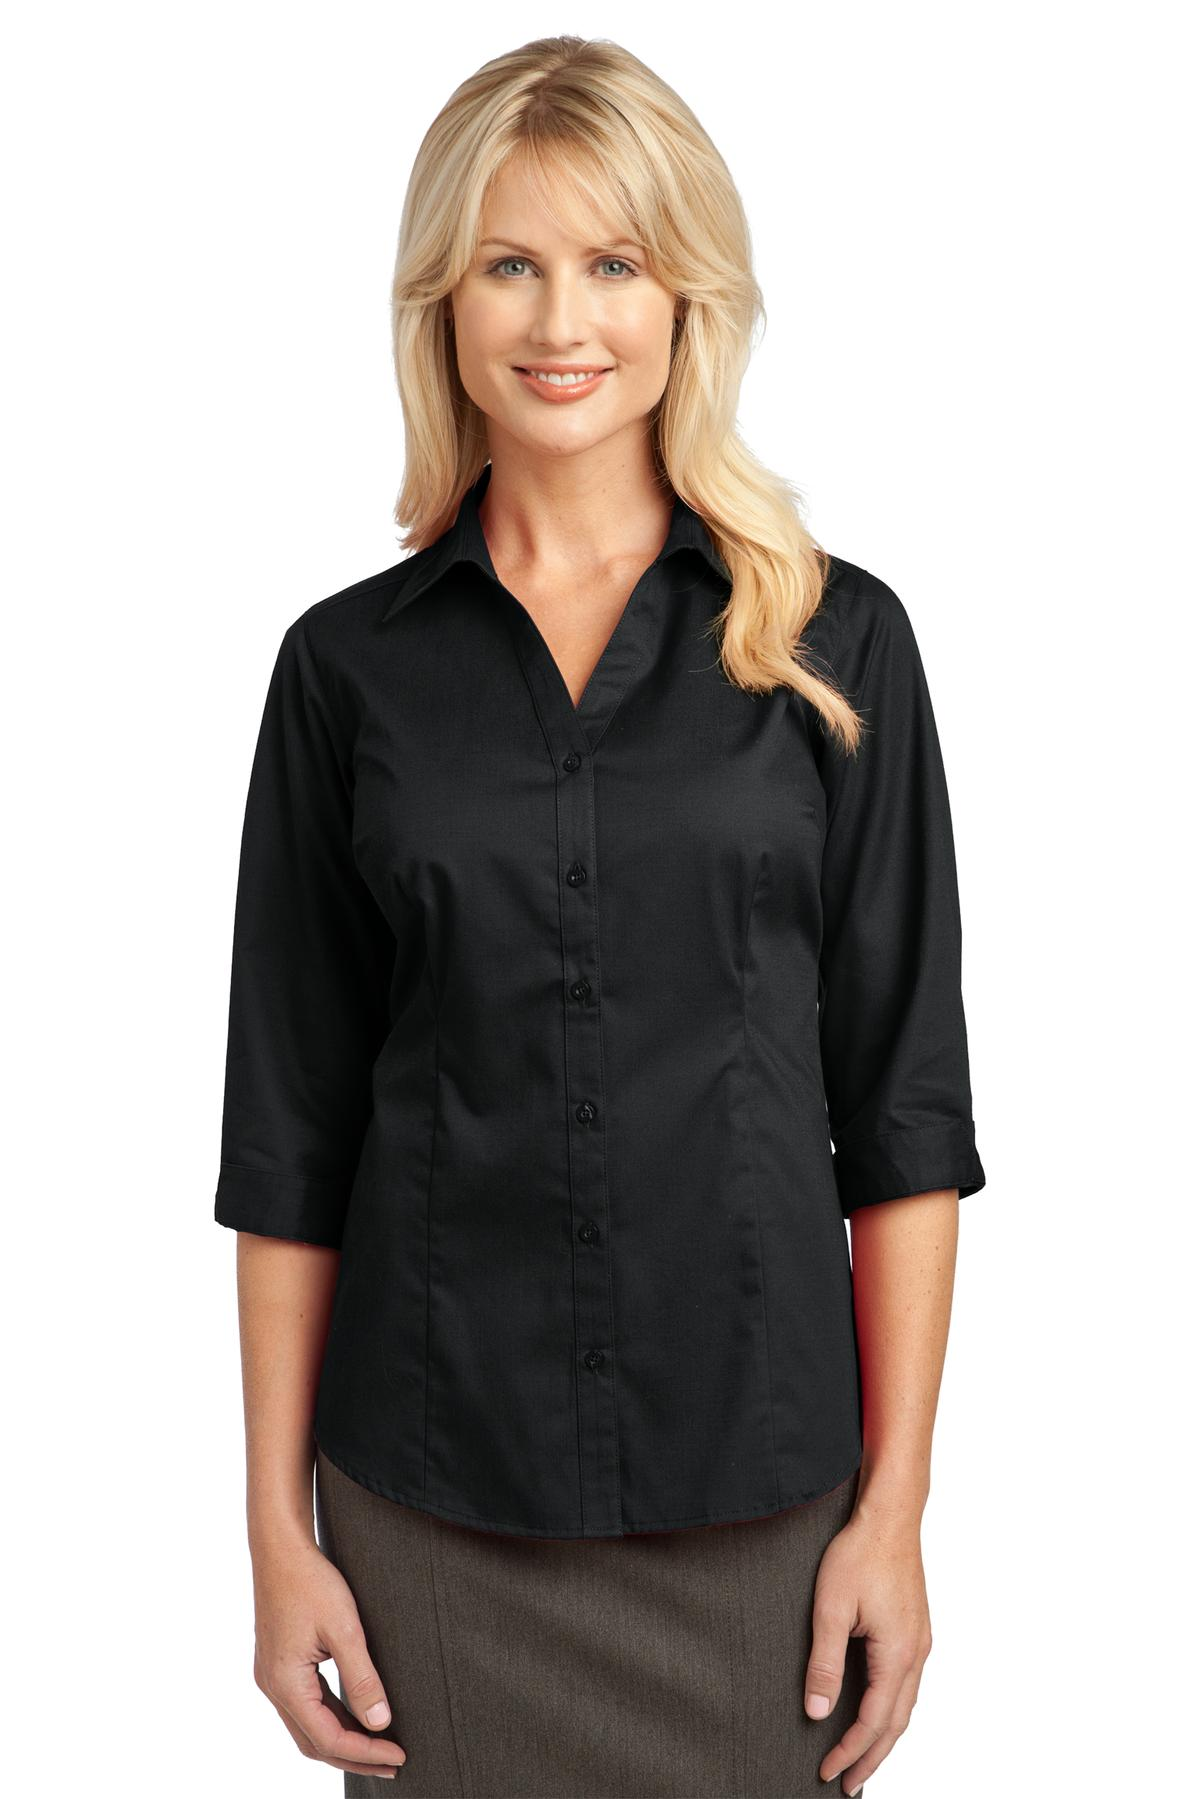 IMPROVED  Port Authority ®  Ladies 3/4-Sleeve Blouse. L6290 - Black